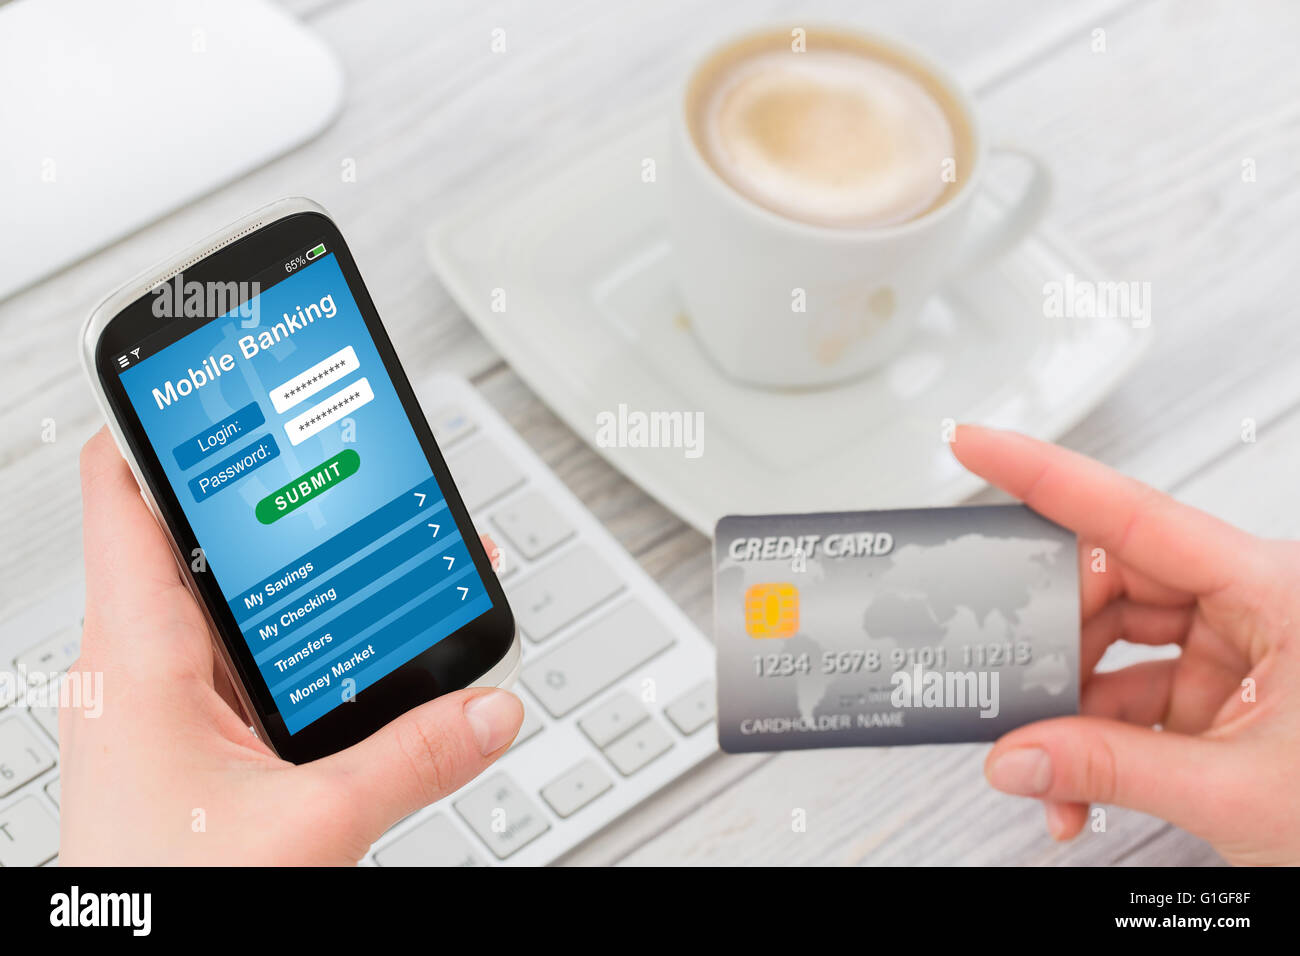 Woman holding smart phone with mobile banking application on a screen. - Stock Image